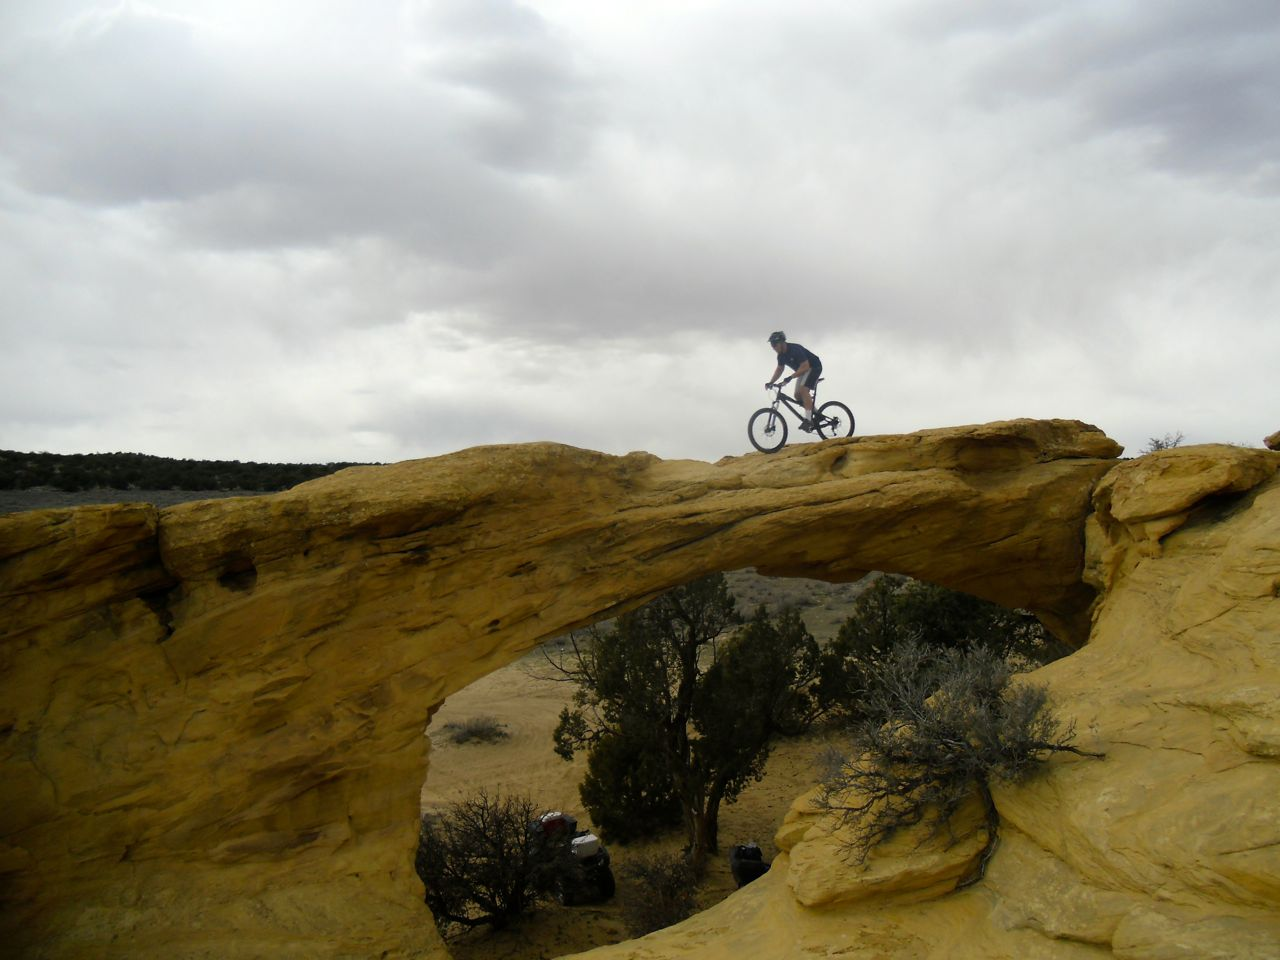 Fun comes in many forms on the Devil's Racetrack route.